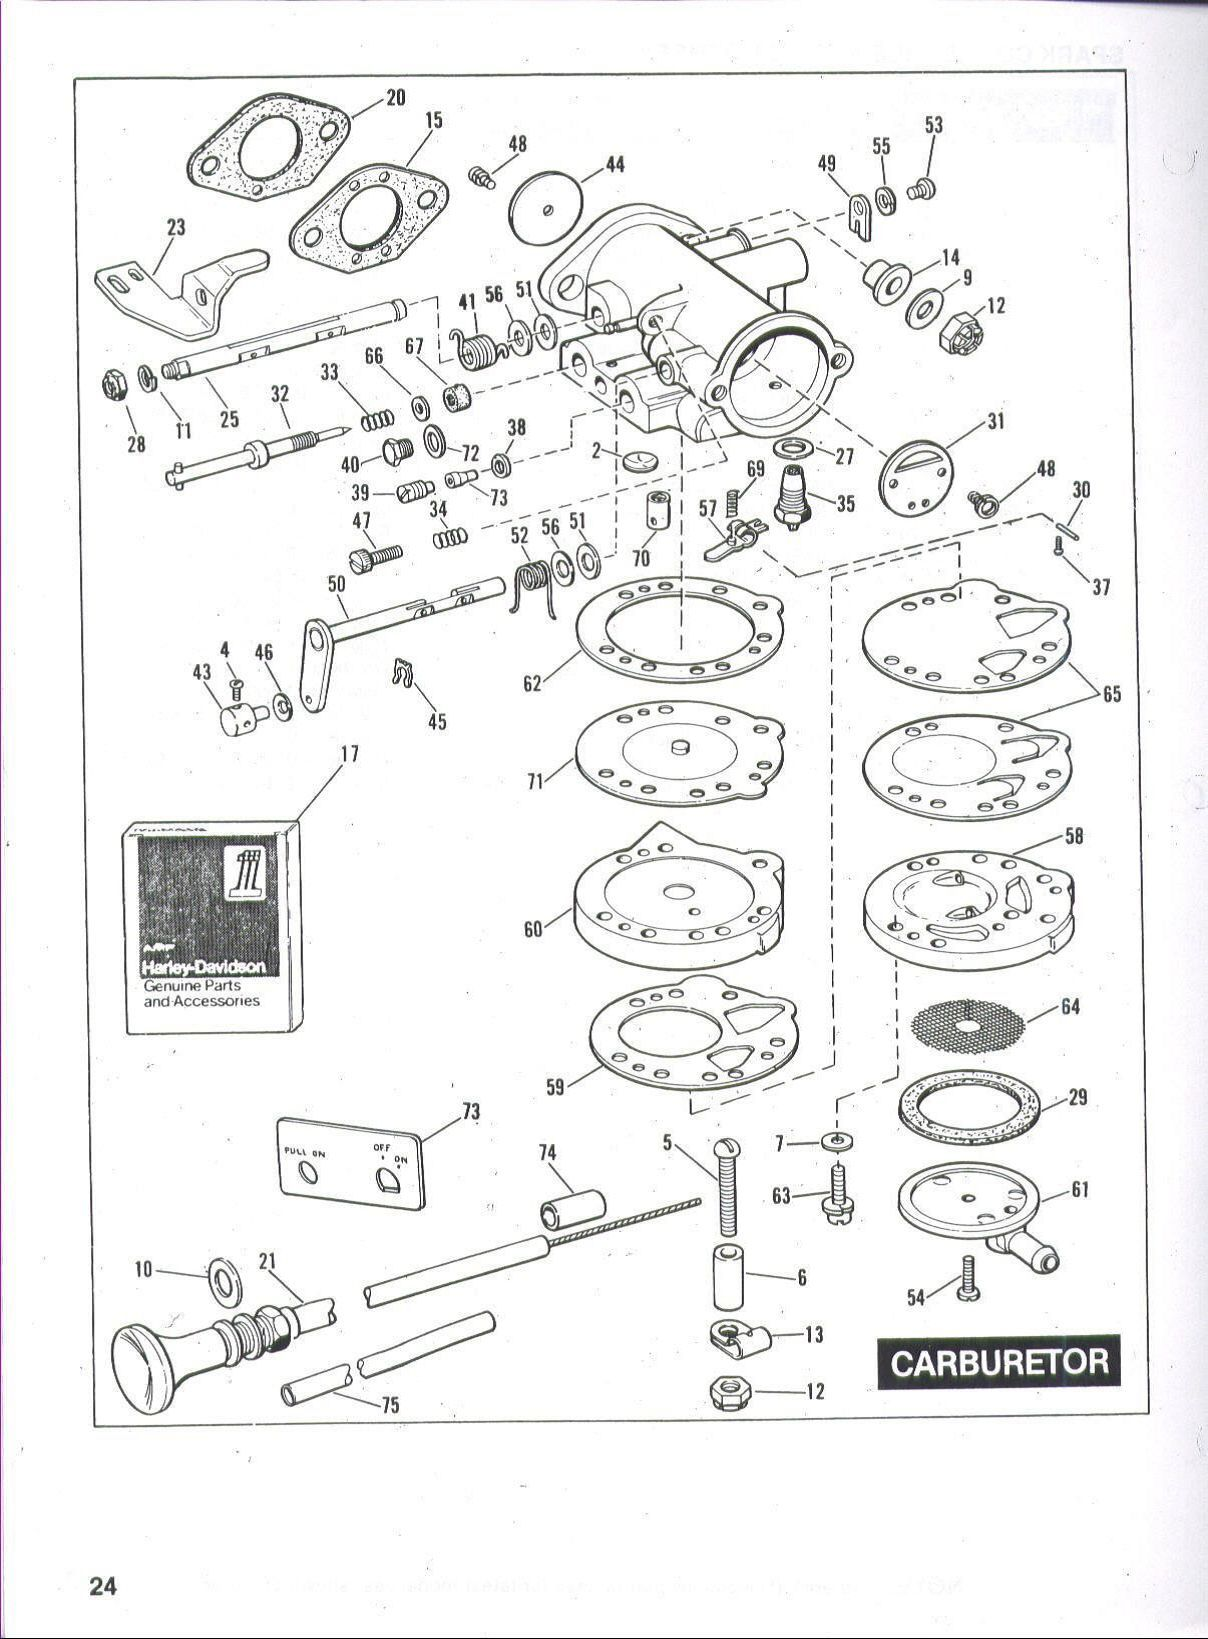 1981 harley davidson golf cart wiring diagram